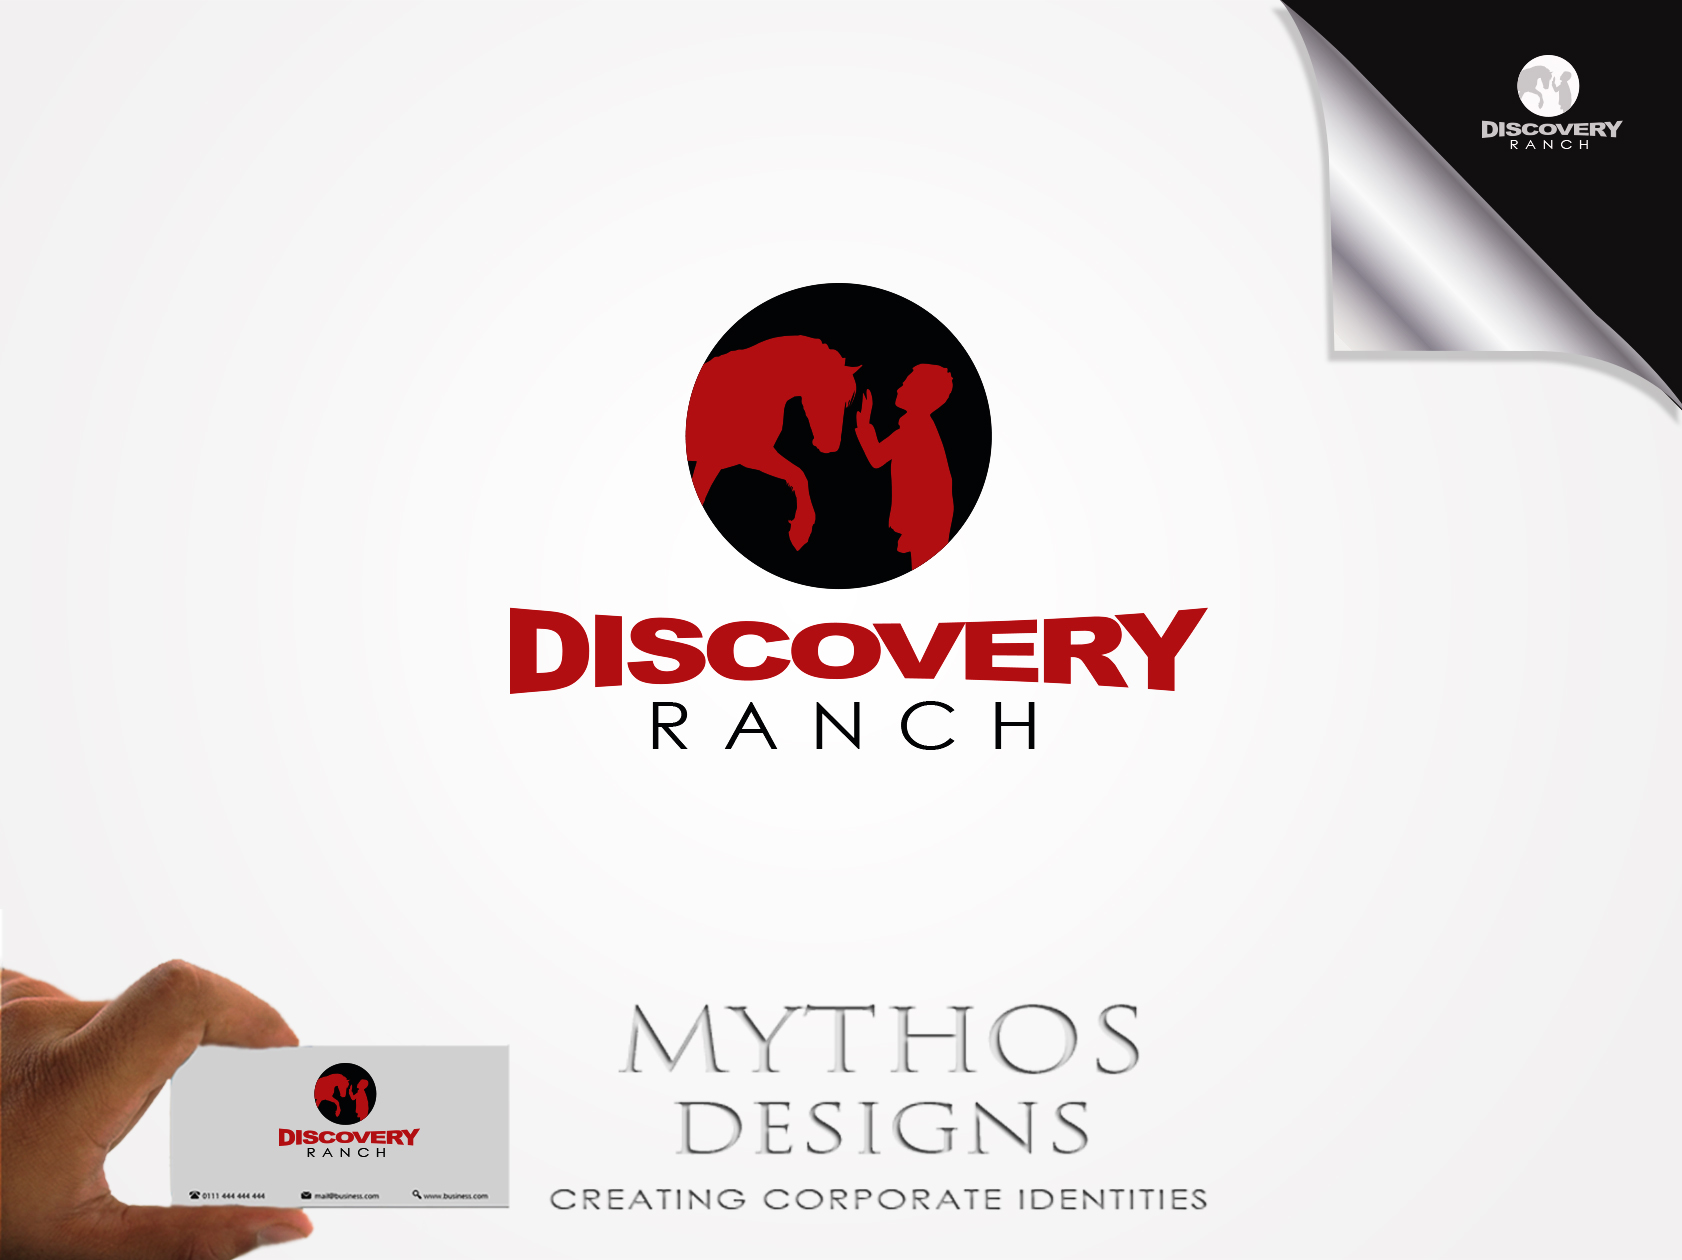 Logo Design by Mythos Designs - Entry No. 72 in the Logo Design Contest Creative Logo Design for Discovery Ranch.